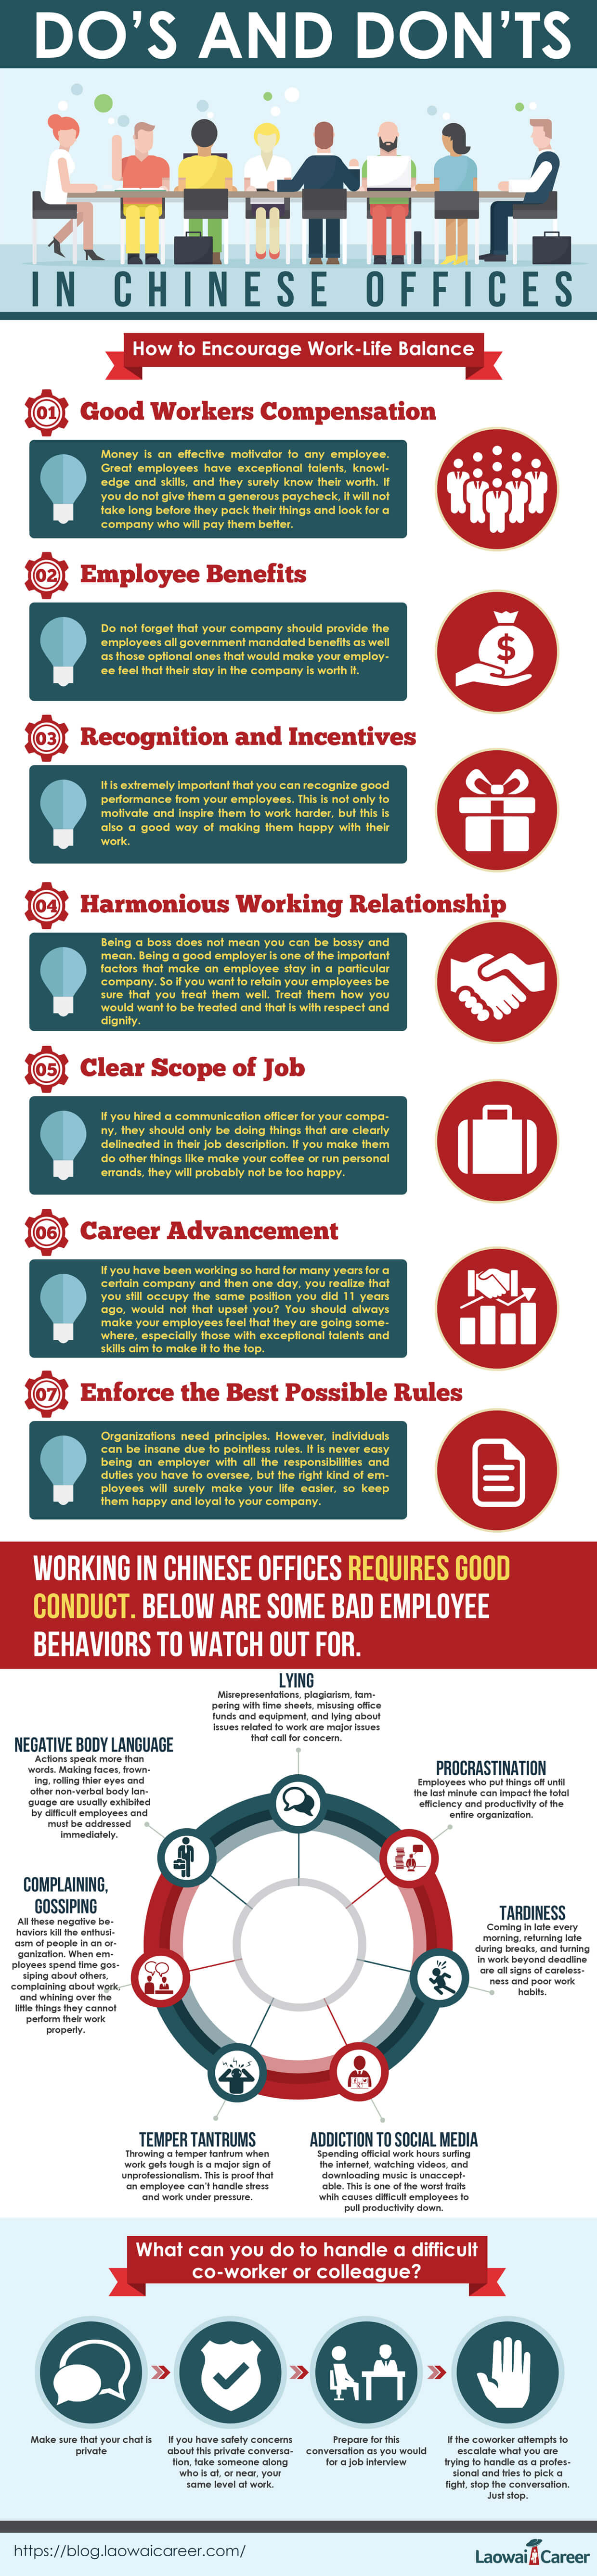 dos-donts-in-chinese-offices-infographic-plaza